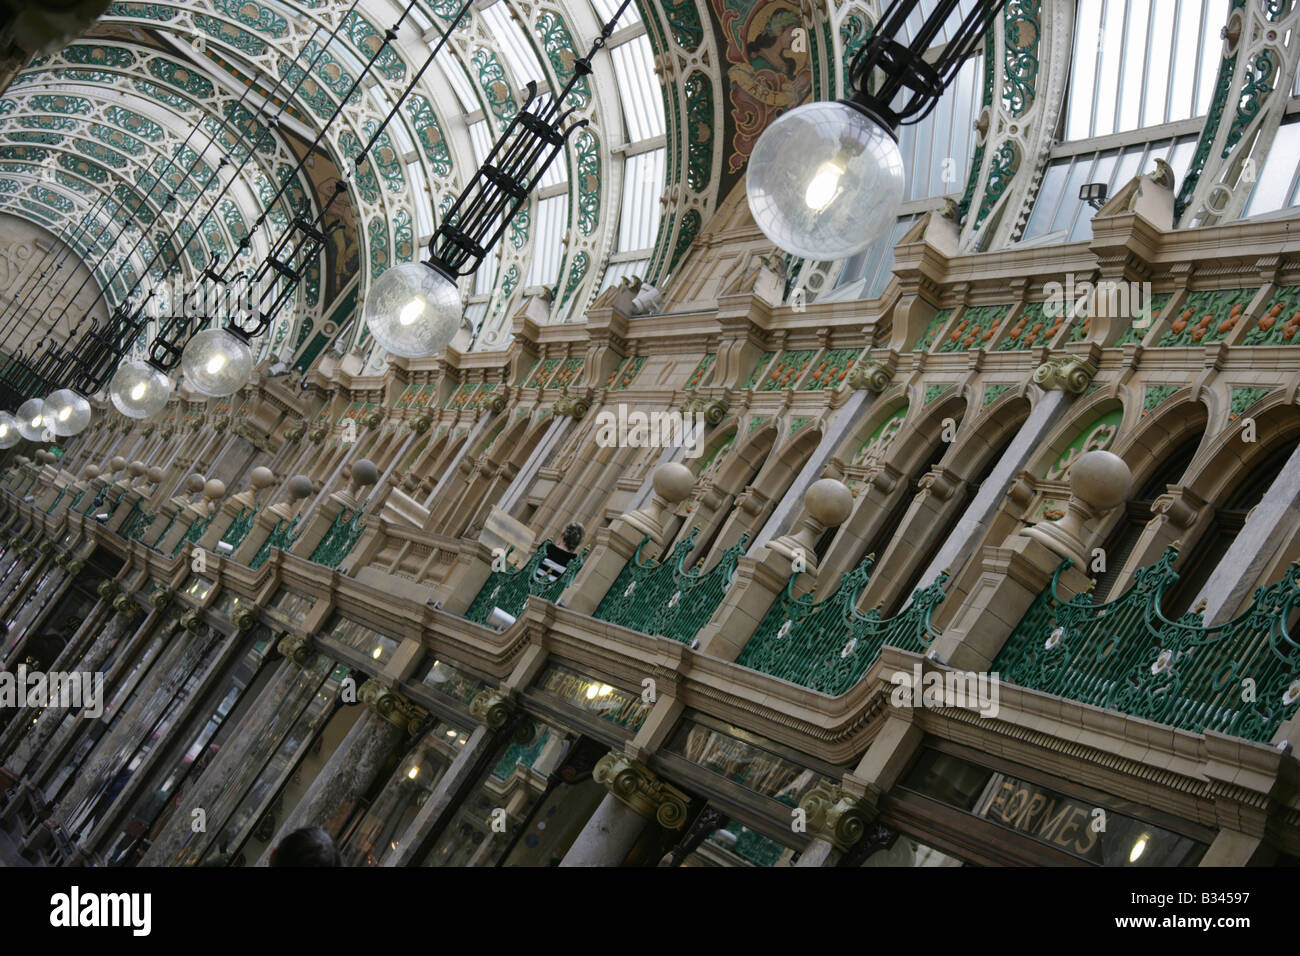 City of Leeds, England. Angled roof structure view of the Frank Matcham designed Victoria Quarter at Briggate and - Stock Image